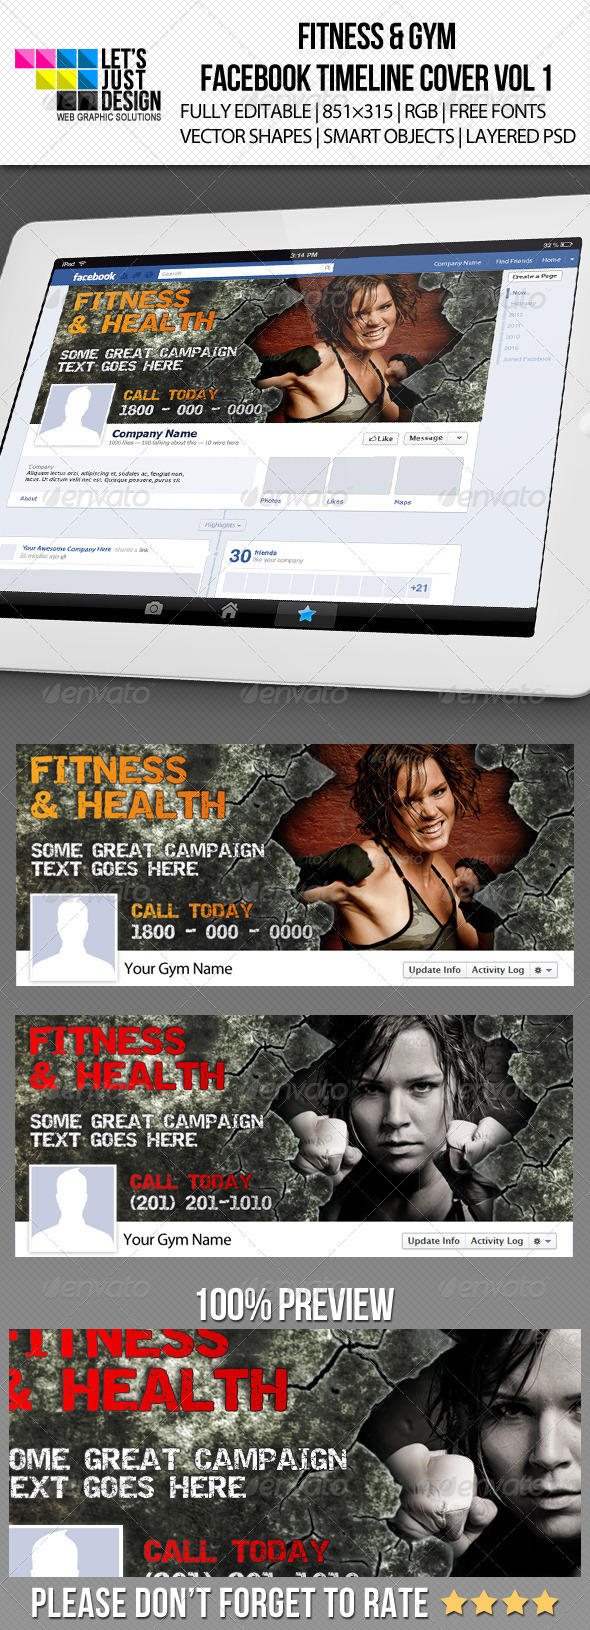 GraphicRiver Fitness & Gym Facebook Timeline Cover Vol 1 5307930